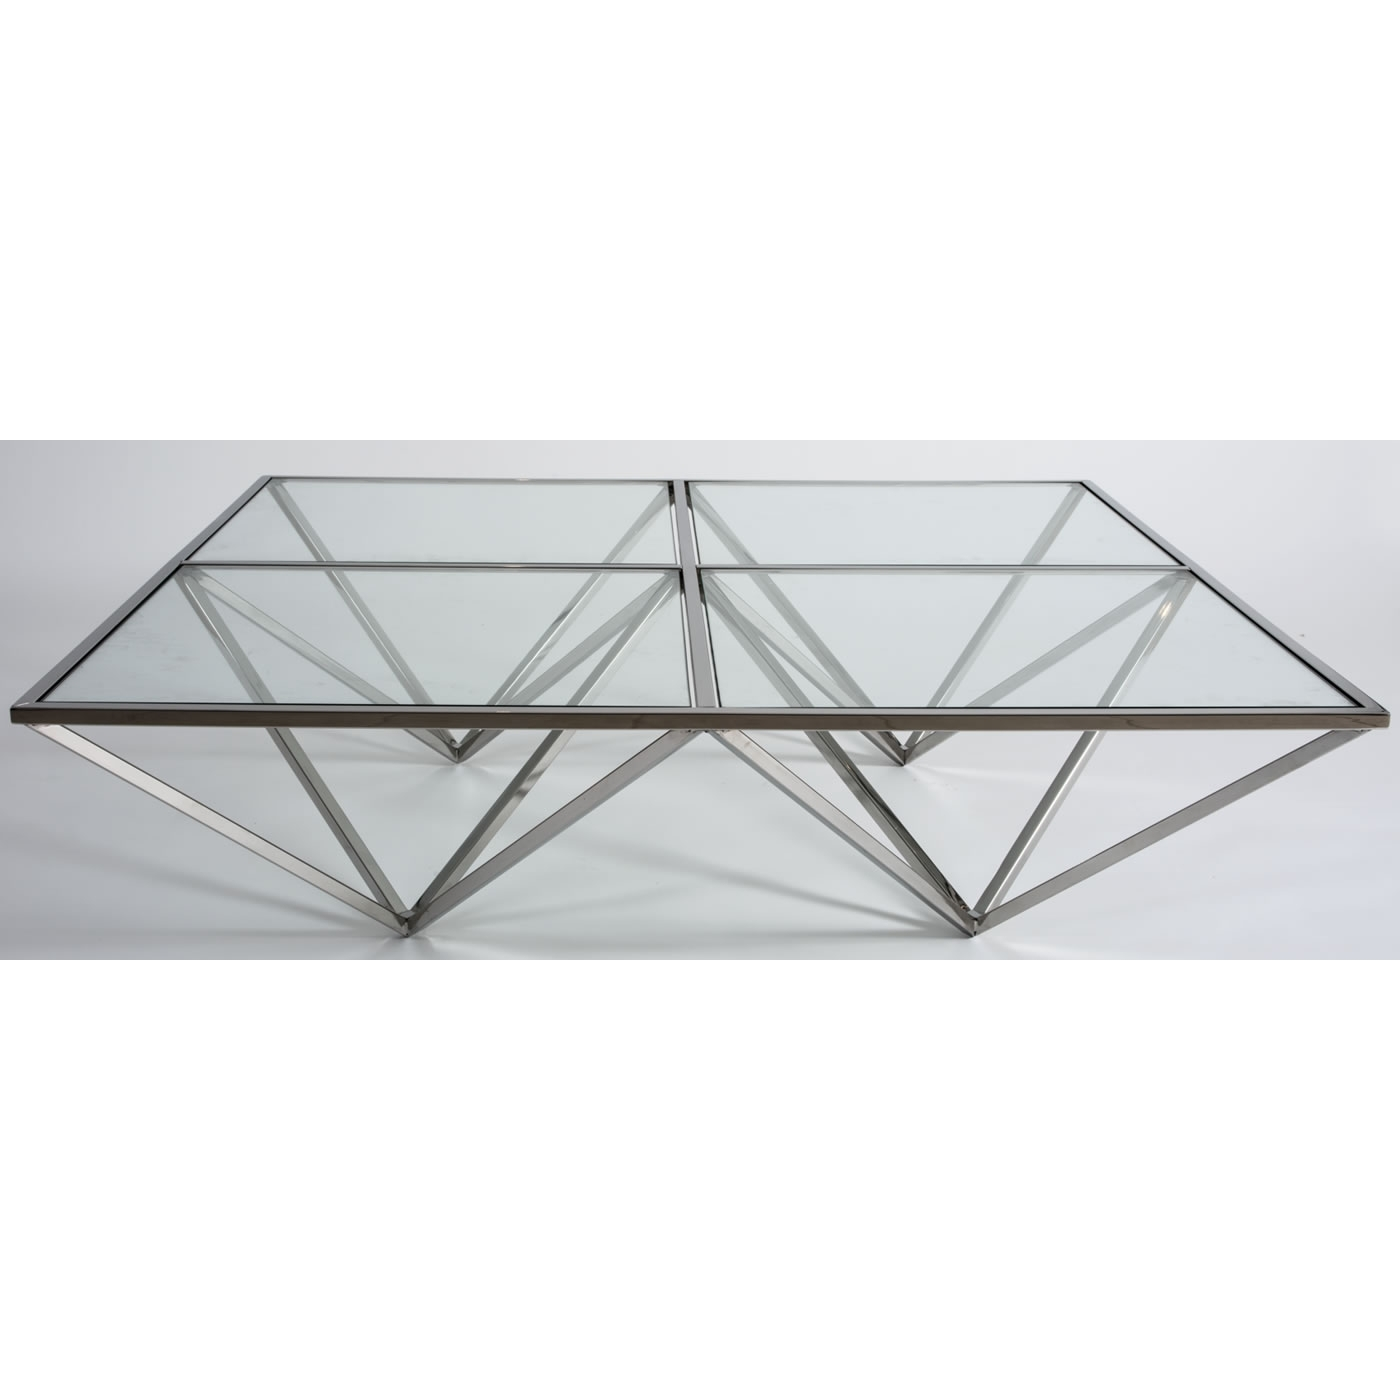 Ultra Design Pertaining To Most Up To Date Inverted Triangle Coffee Tables (Gallery 1 of 20)